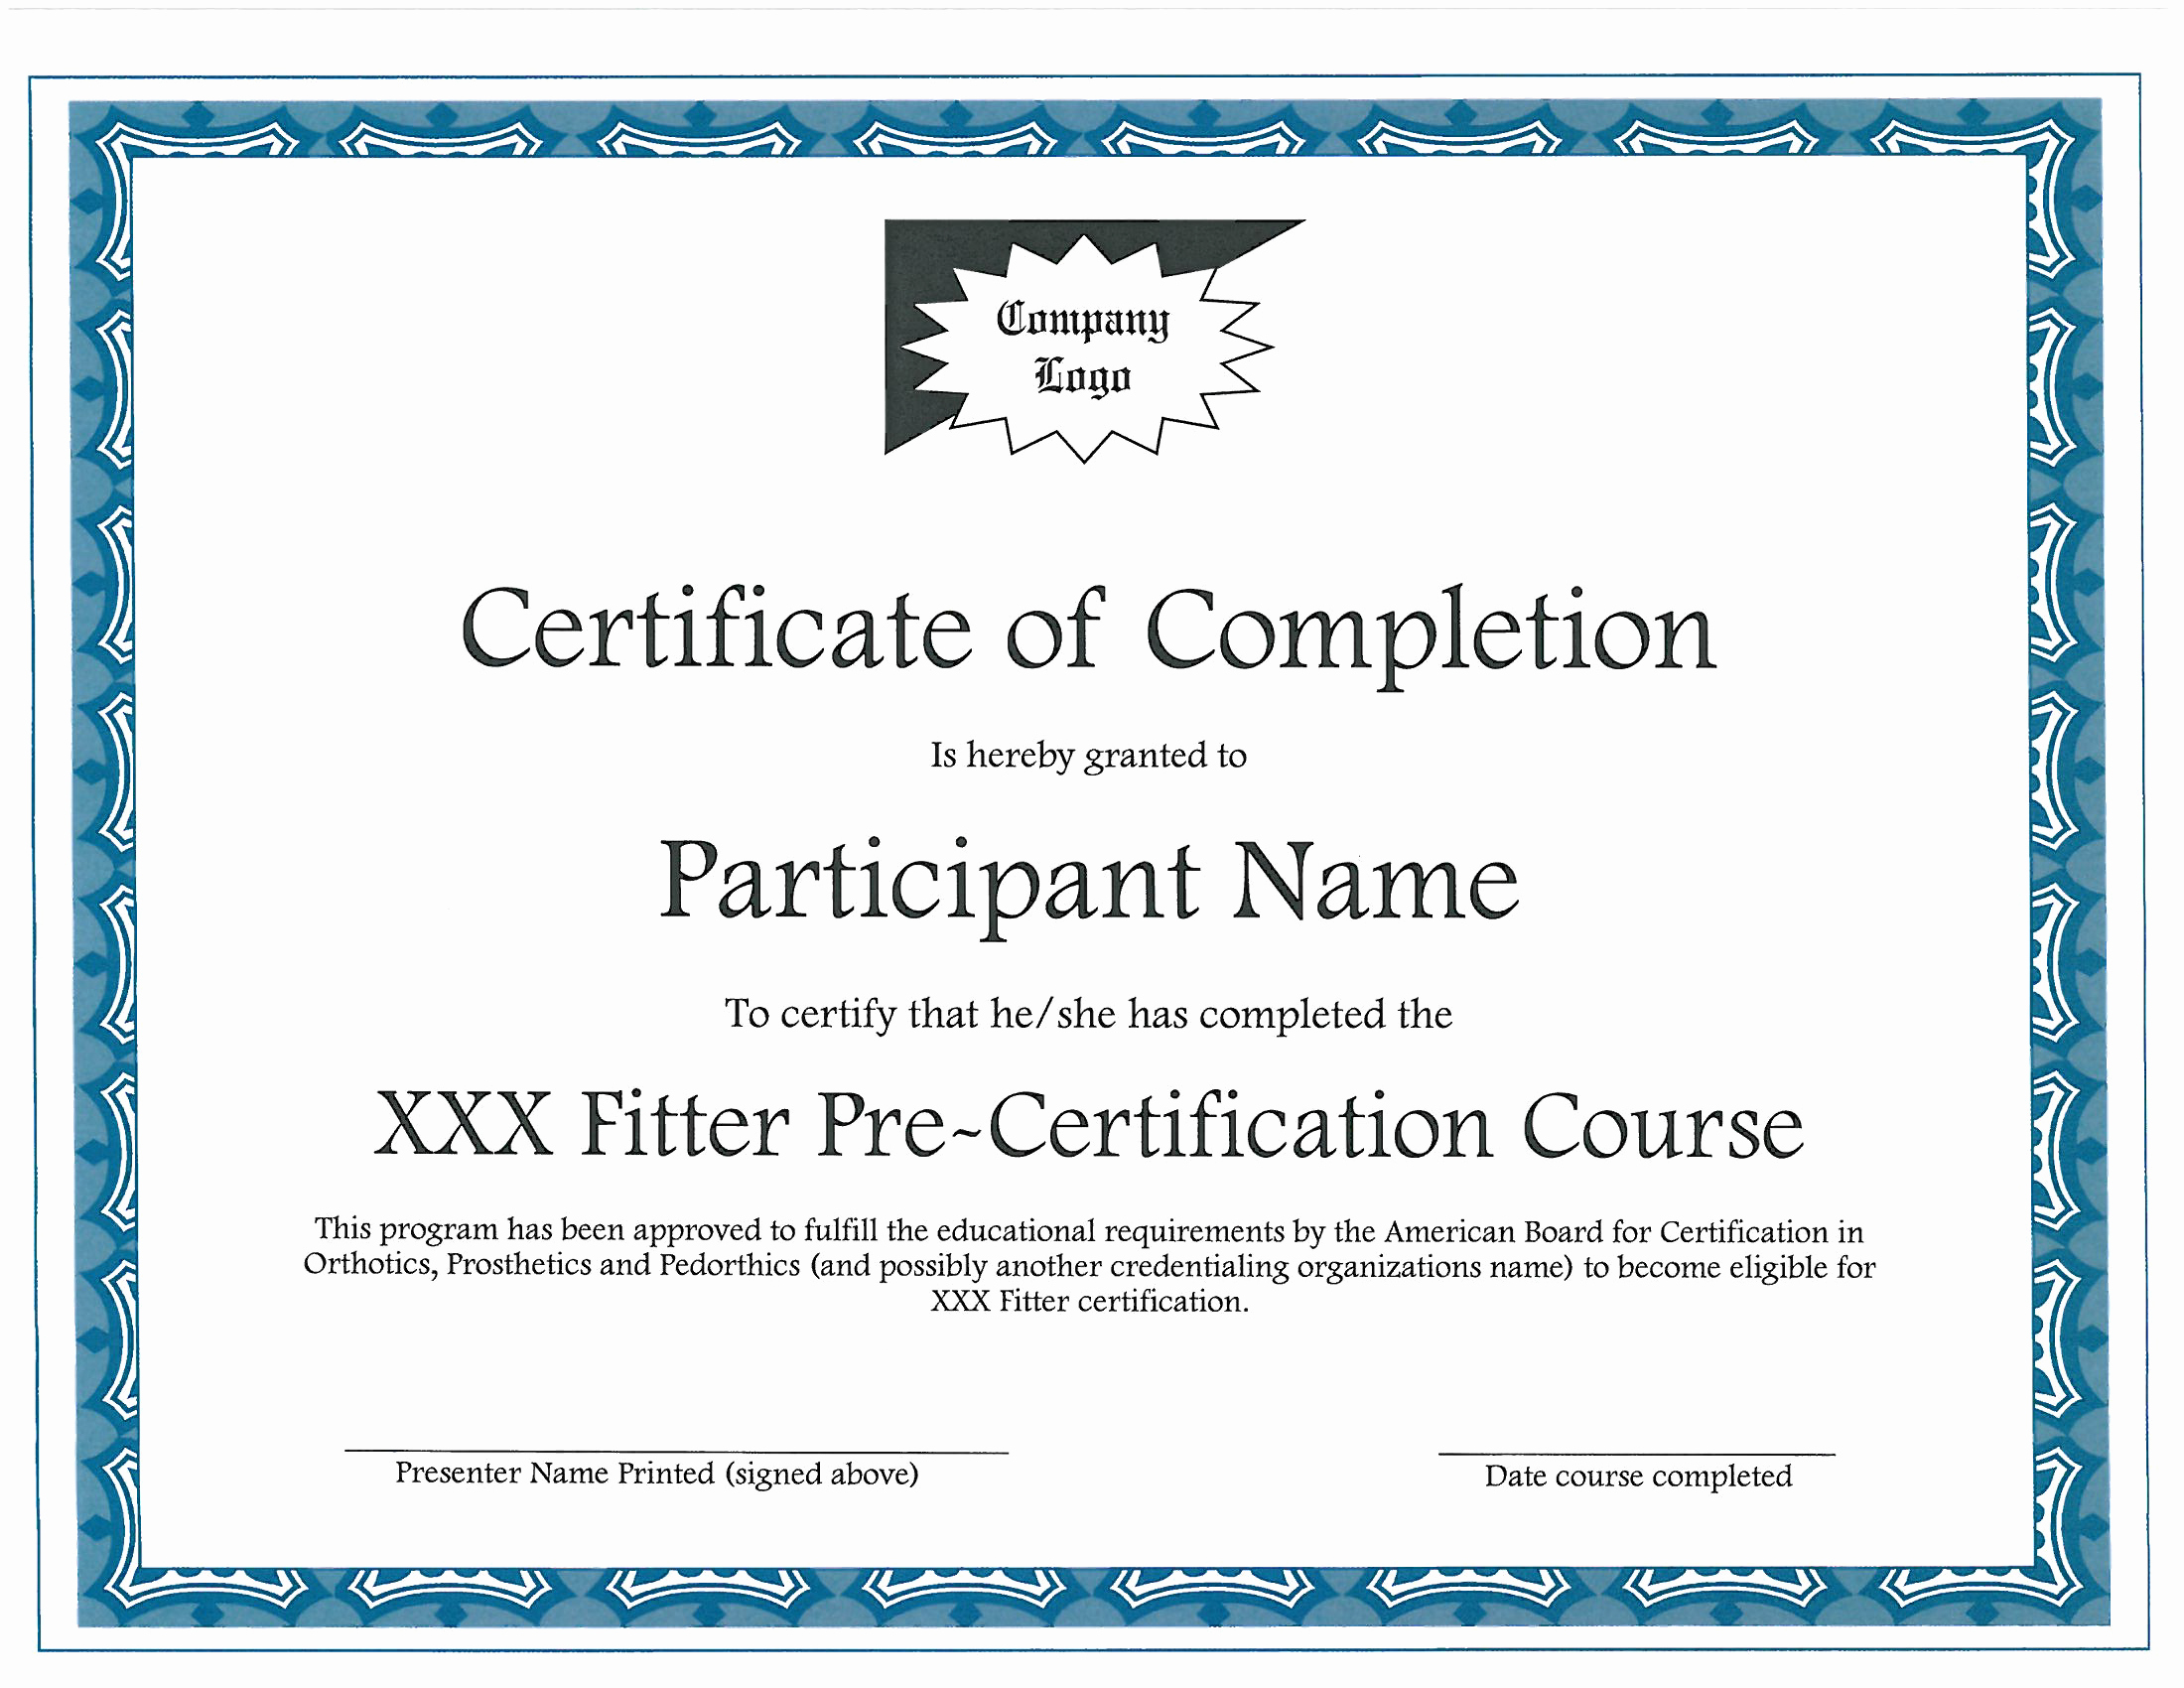 Certificate Of Completion Images Lovely Fitter Pre Certification Course Providers